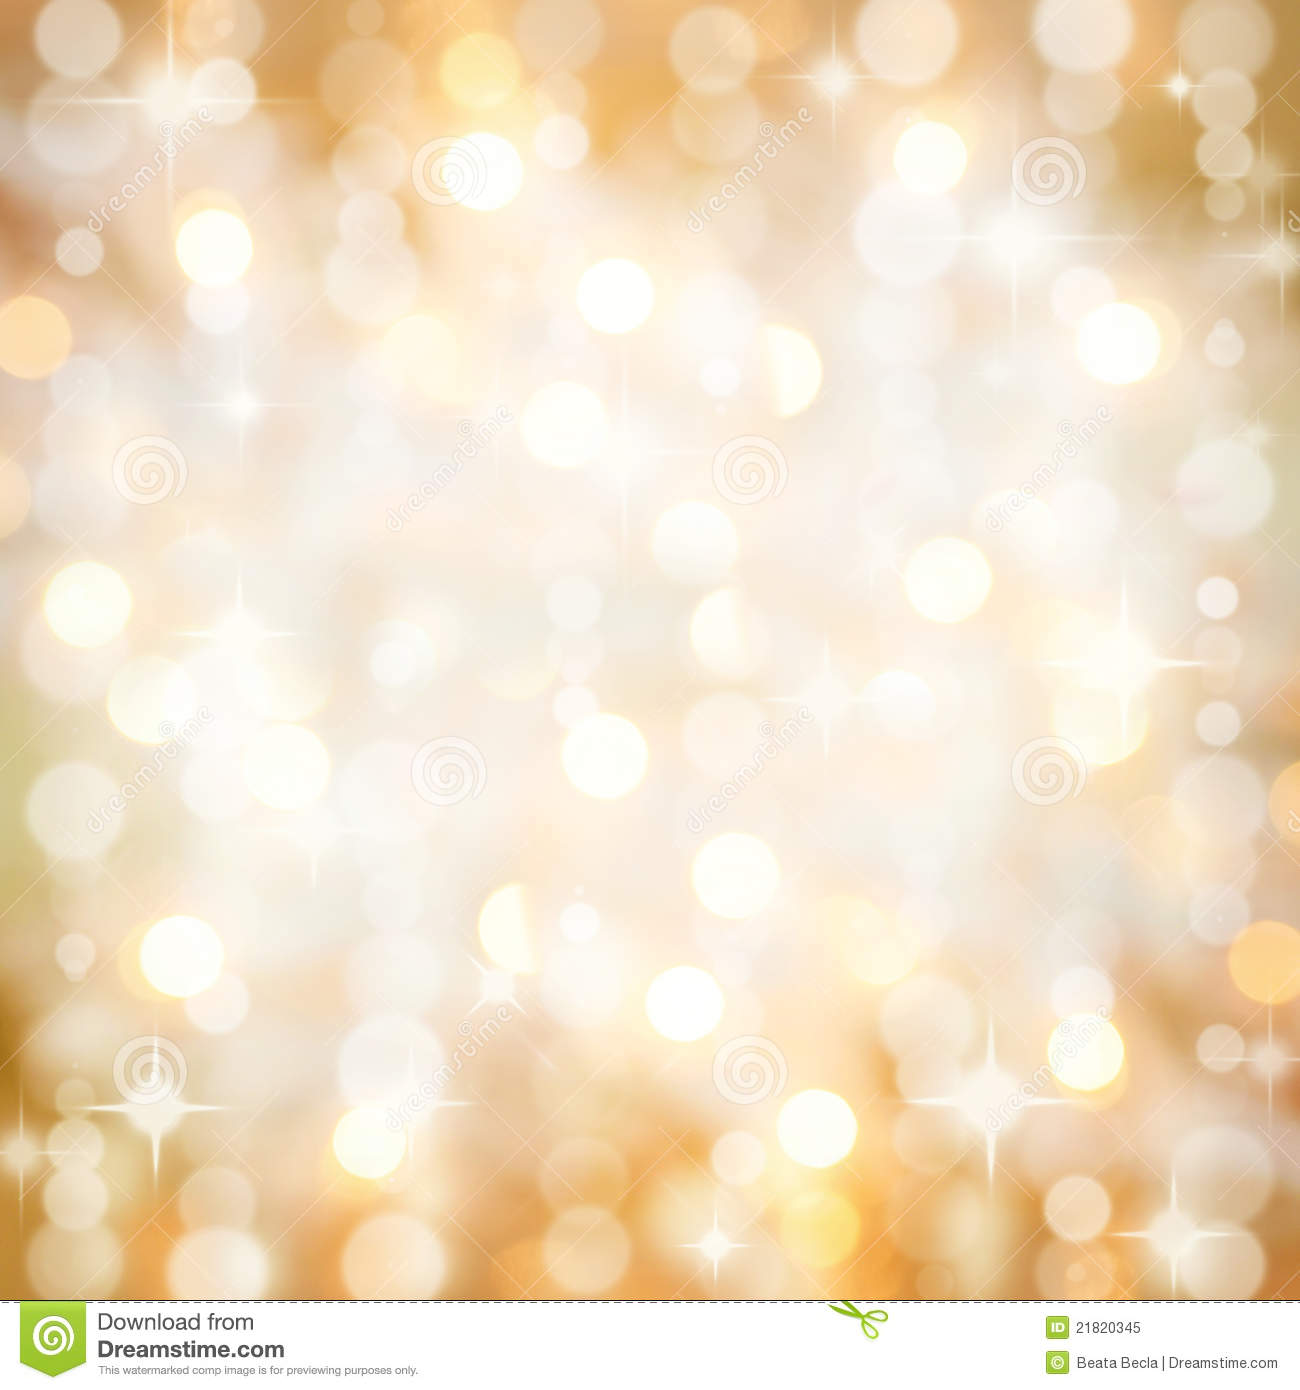 Sparkling Golden Christmas Party Lights Background Stock